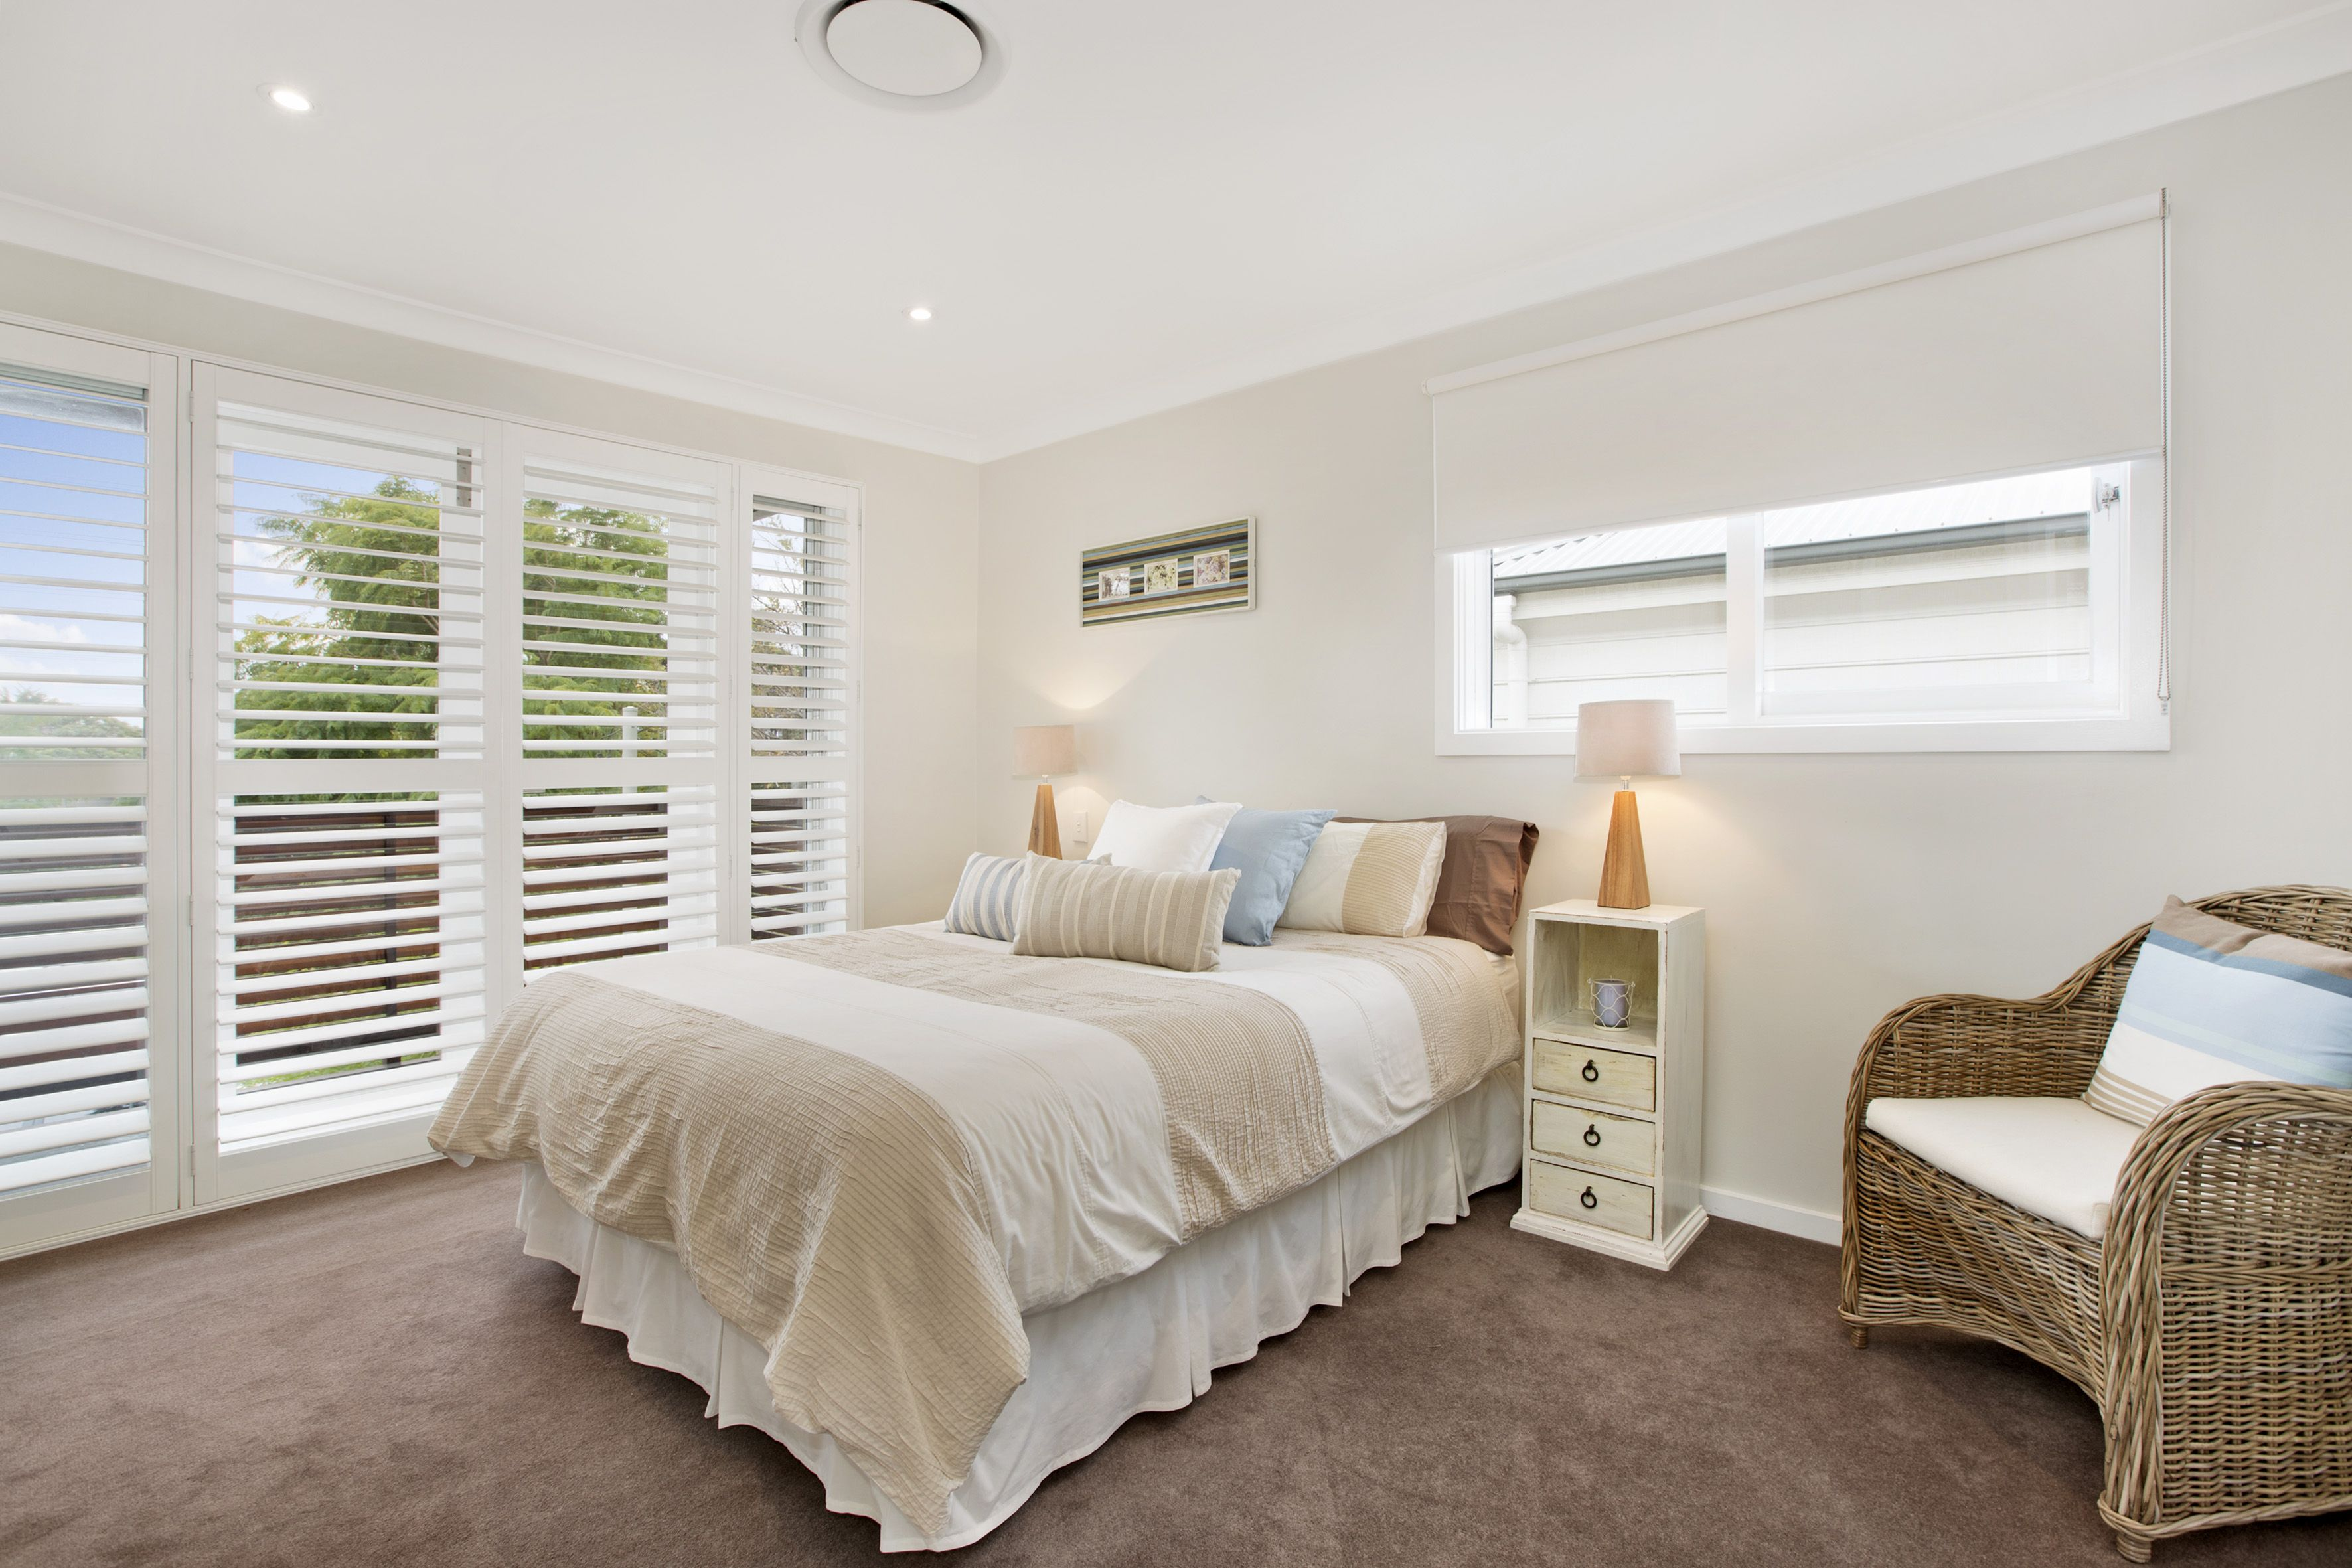 Curtains And Shutters | Plantation Shutters, Blinds Or Curtains? | Chic To  Shore